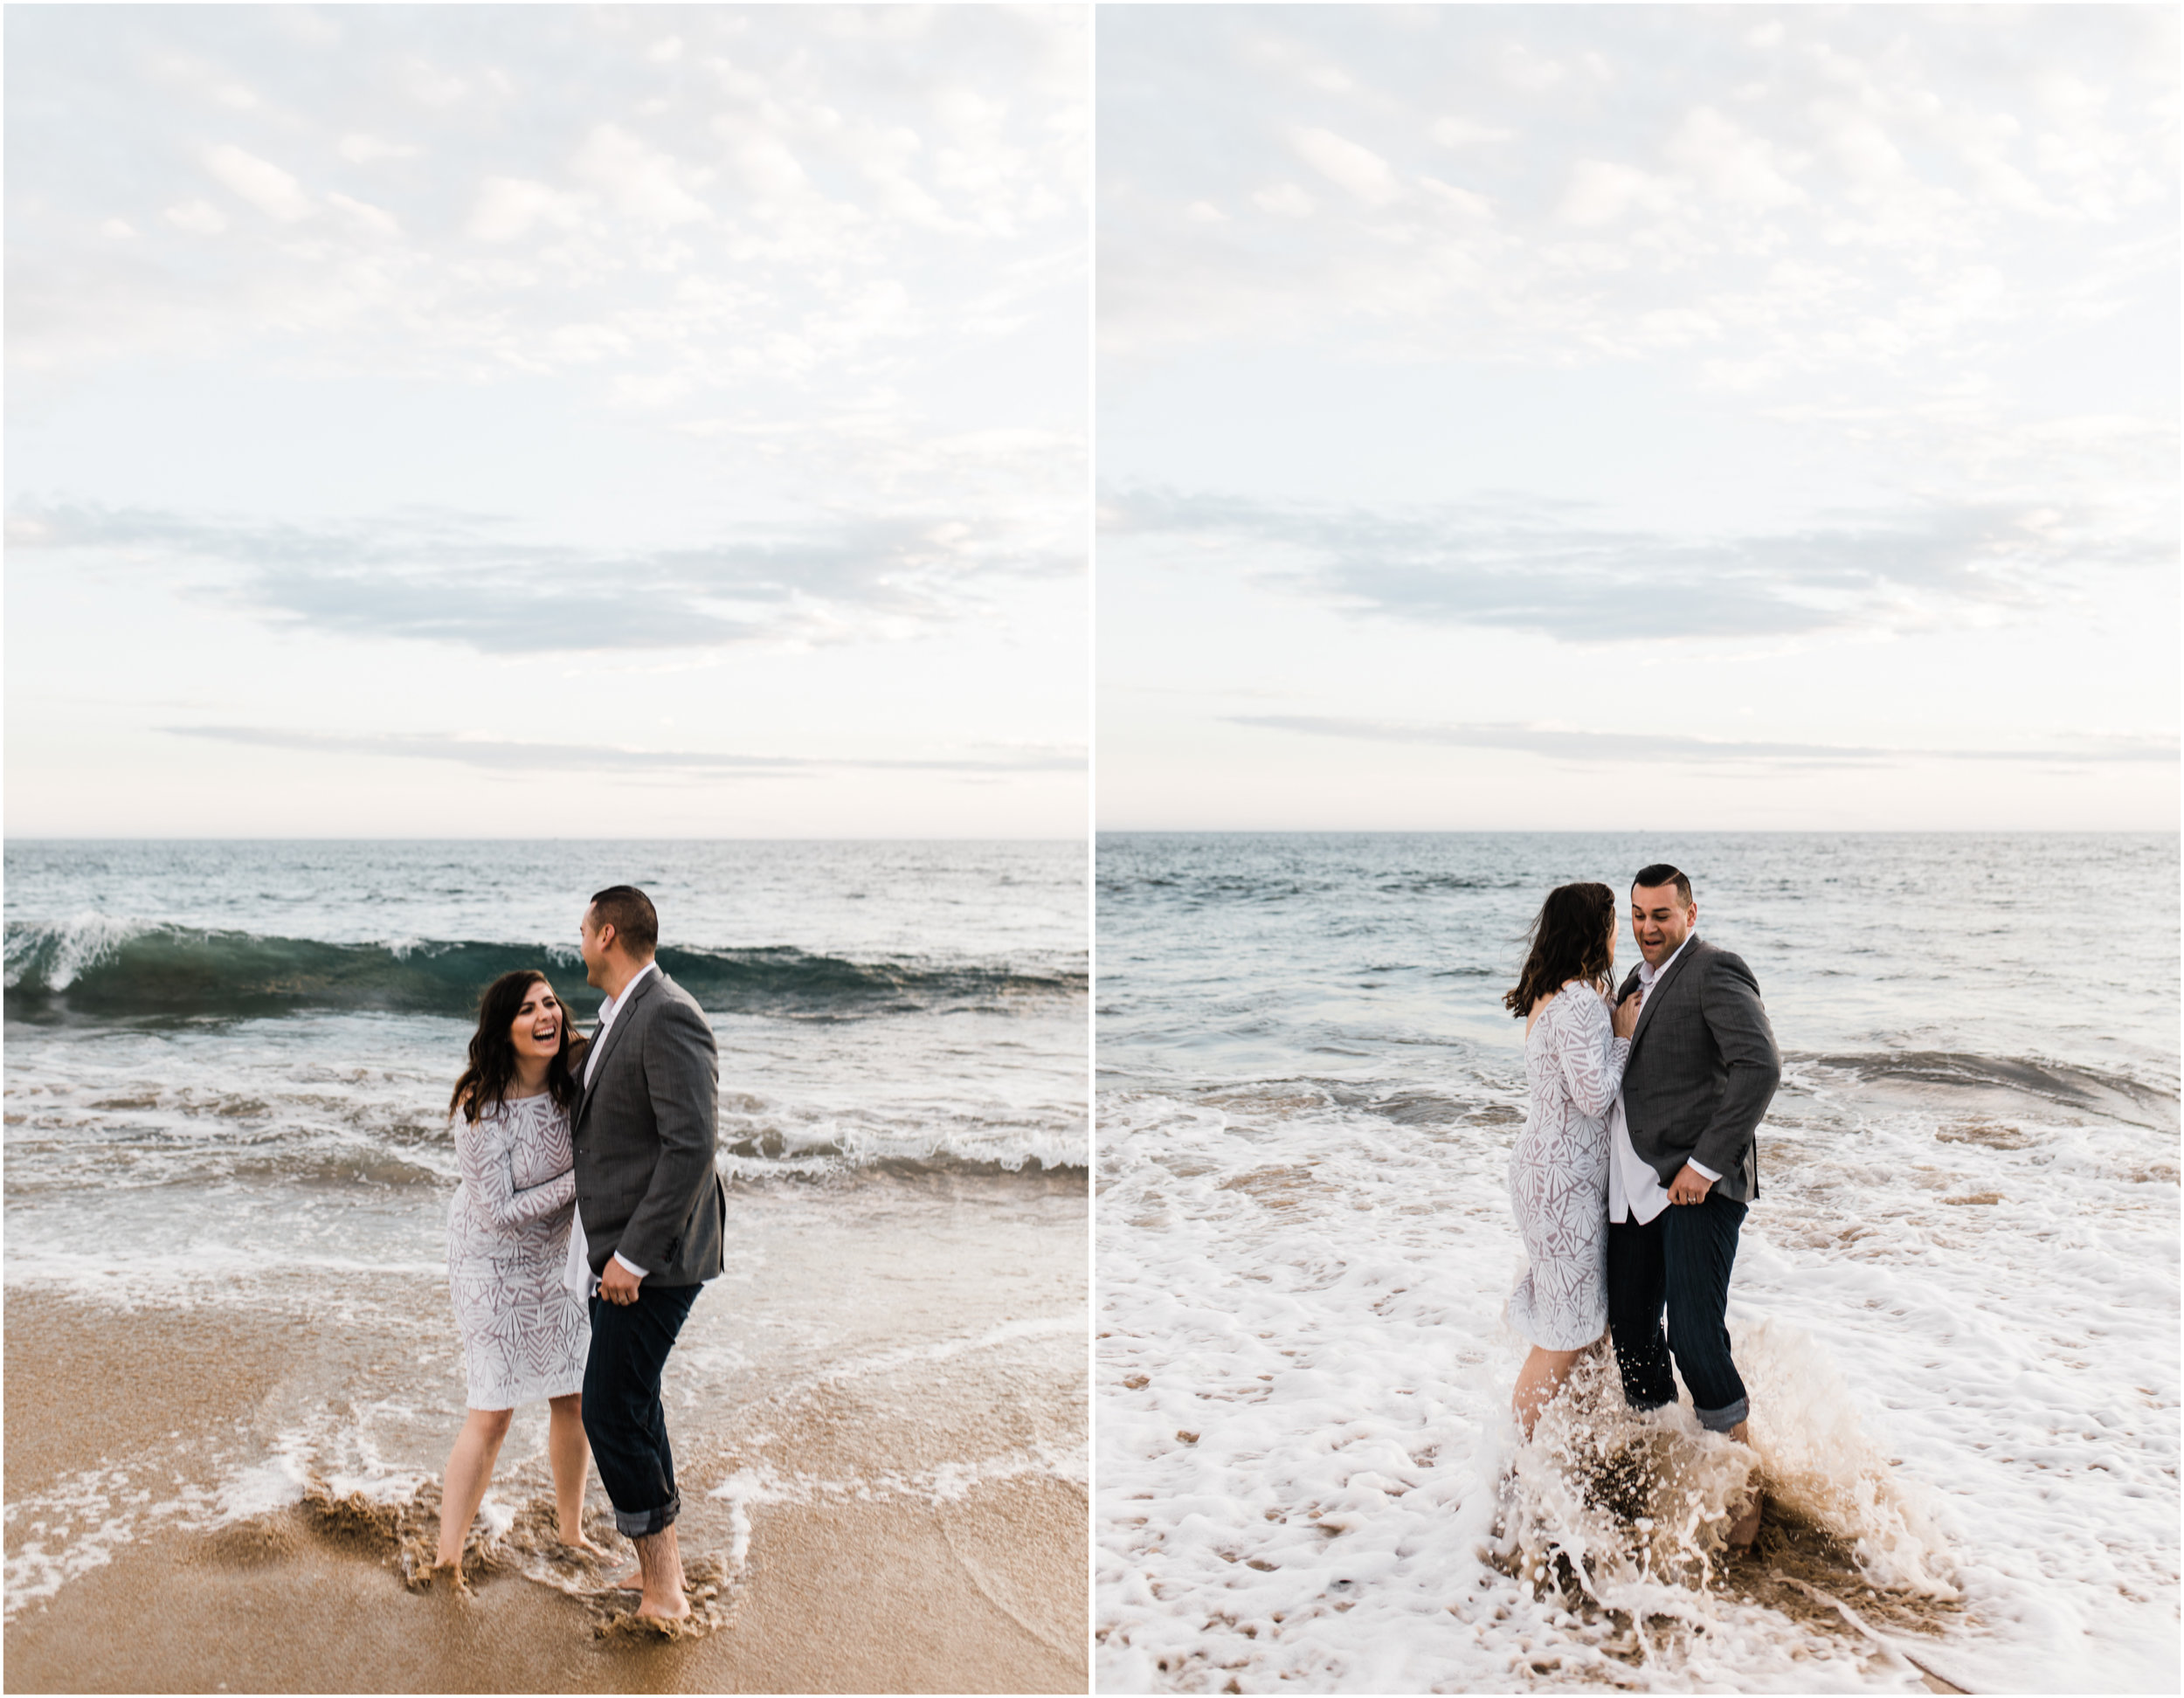 Elise&Julio-The-Wedge-Newport-Beach-CRM-Media-Southern-California-Wedding-Photographer-17